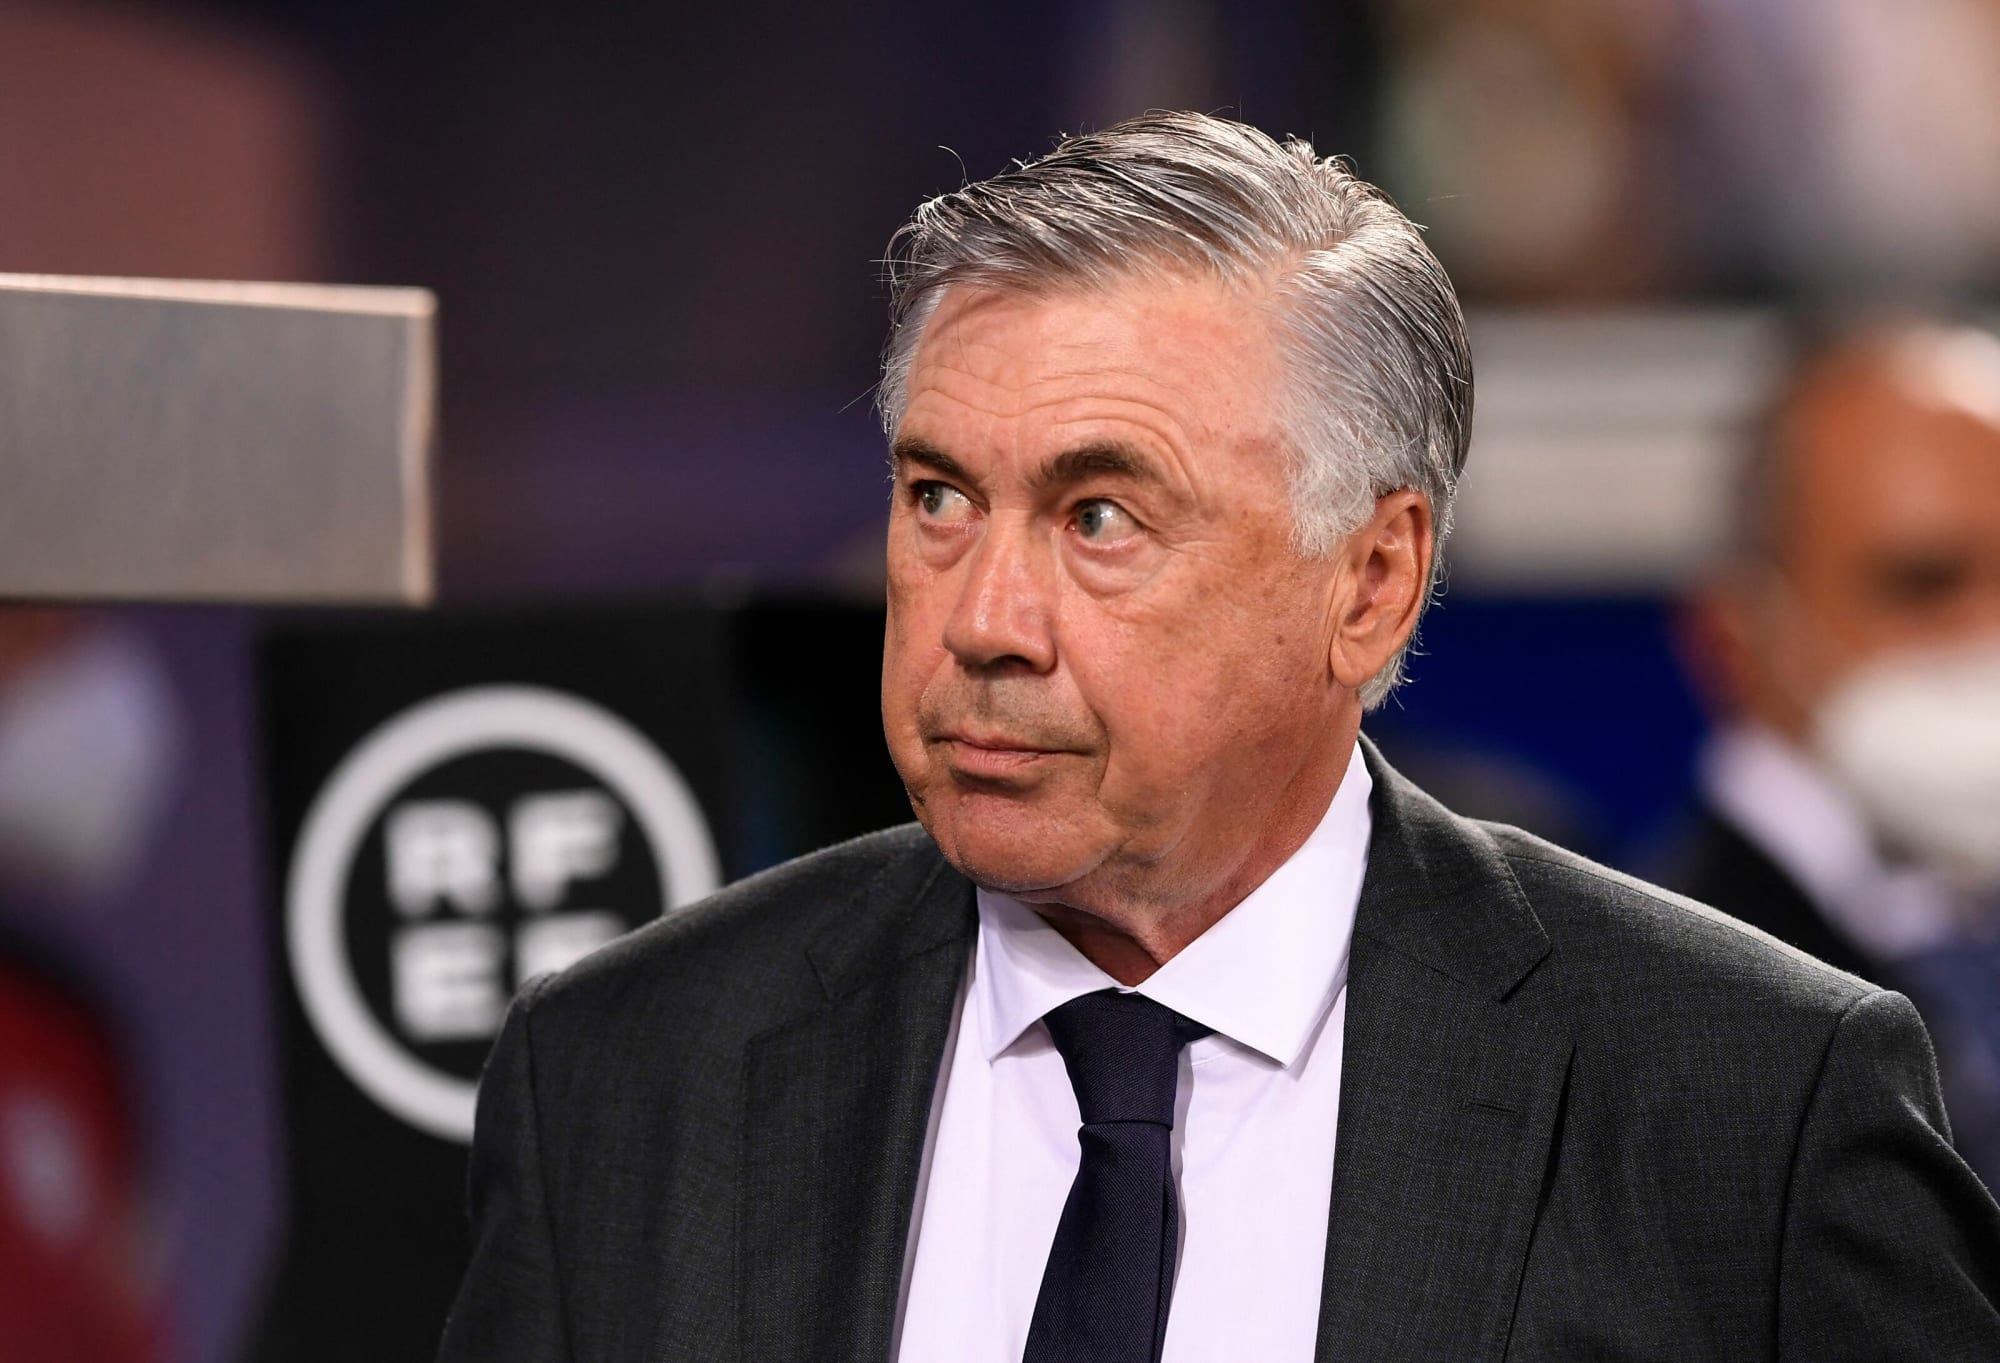 Real Madrid should not feel threatened by Bayern's interest in Haaland alternative